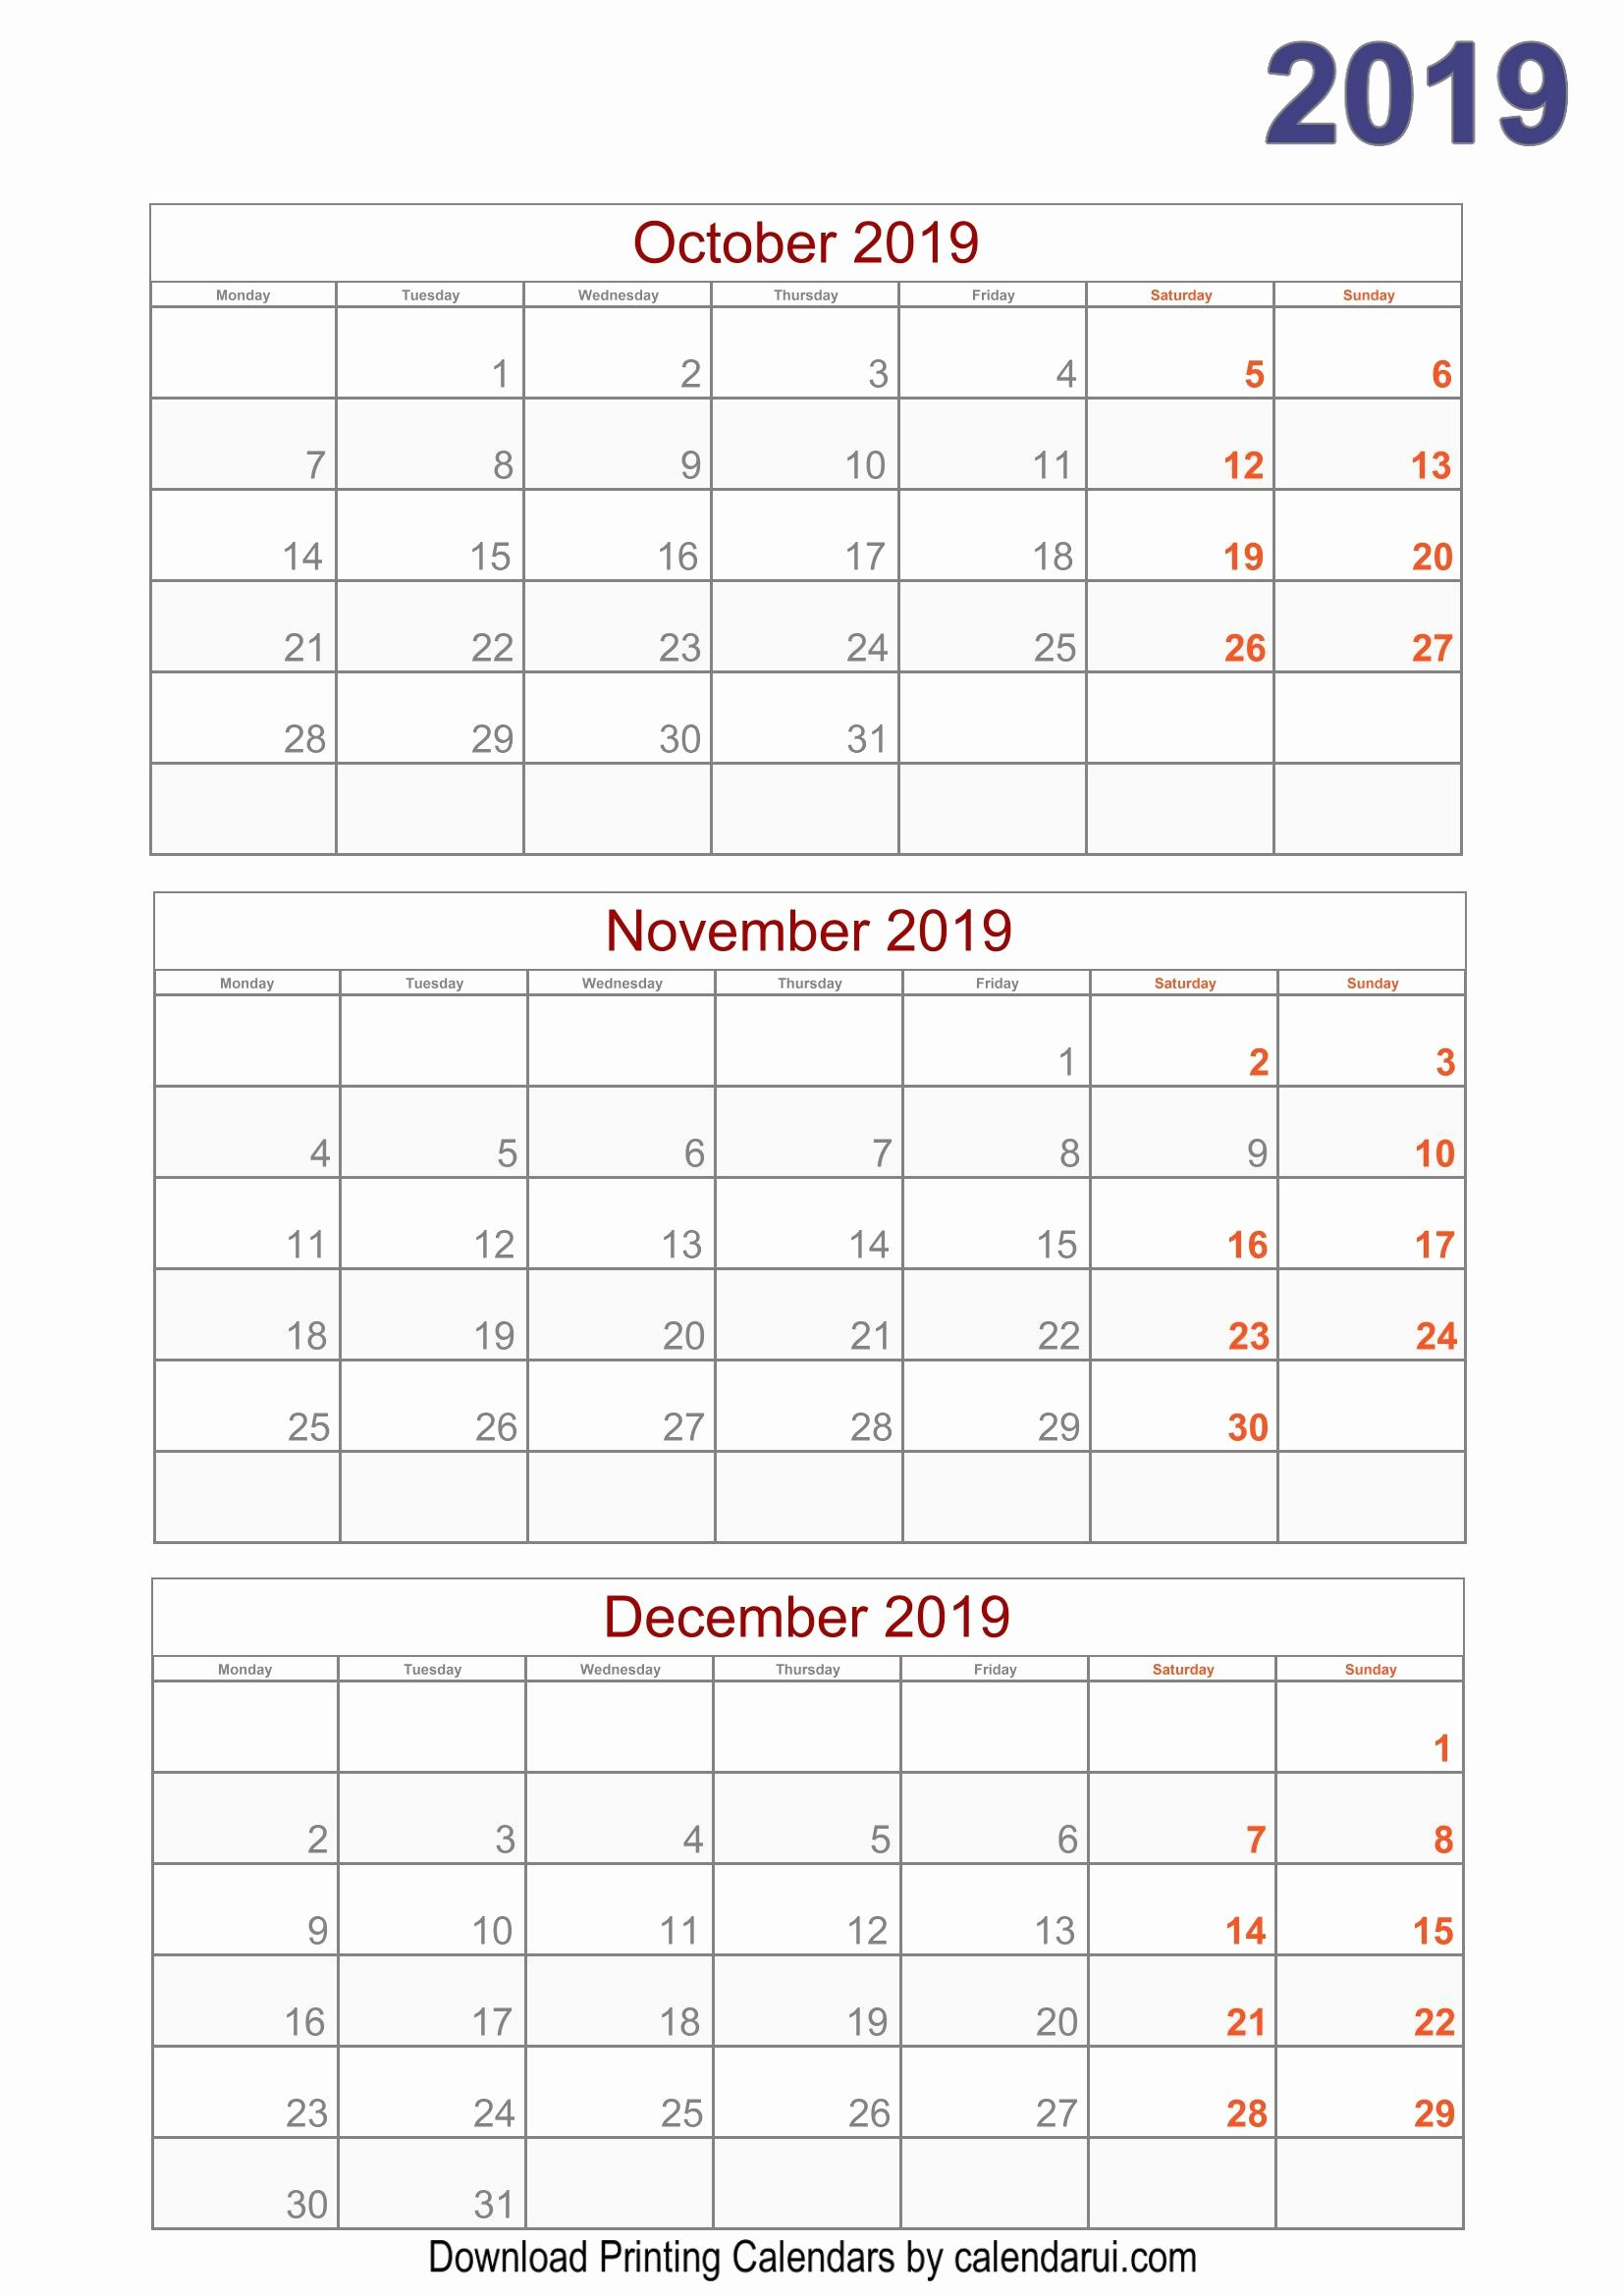 Printable Calendar I Can Type On In 2020 | Quarterly